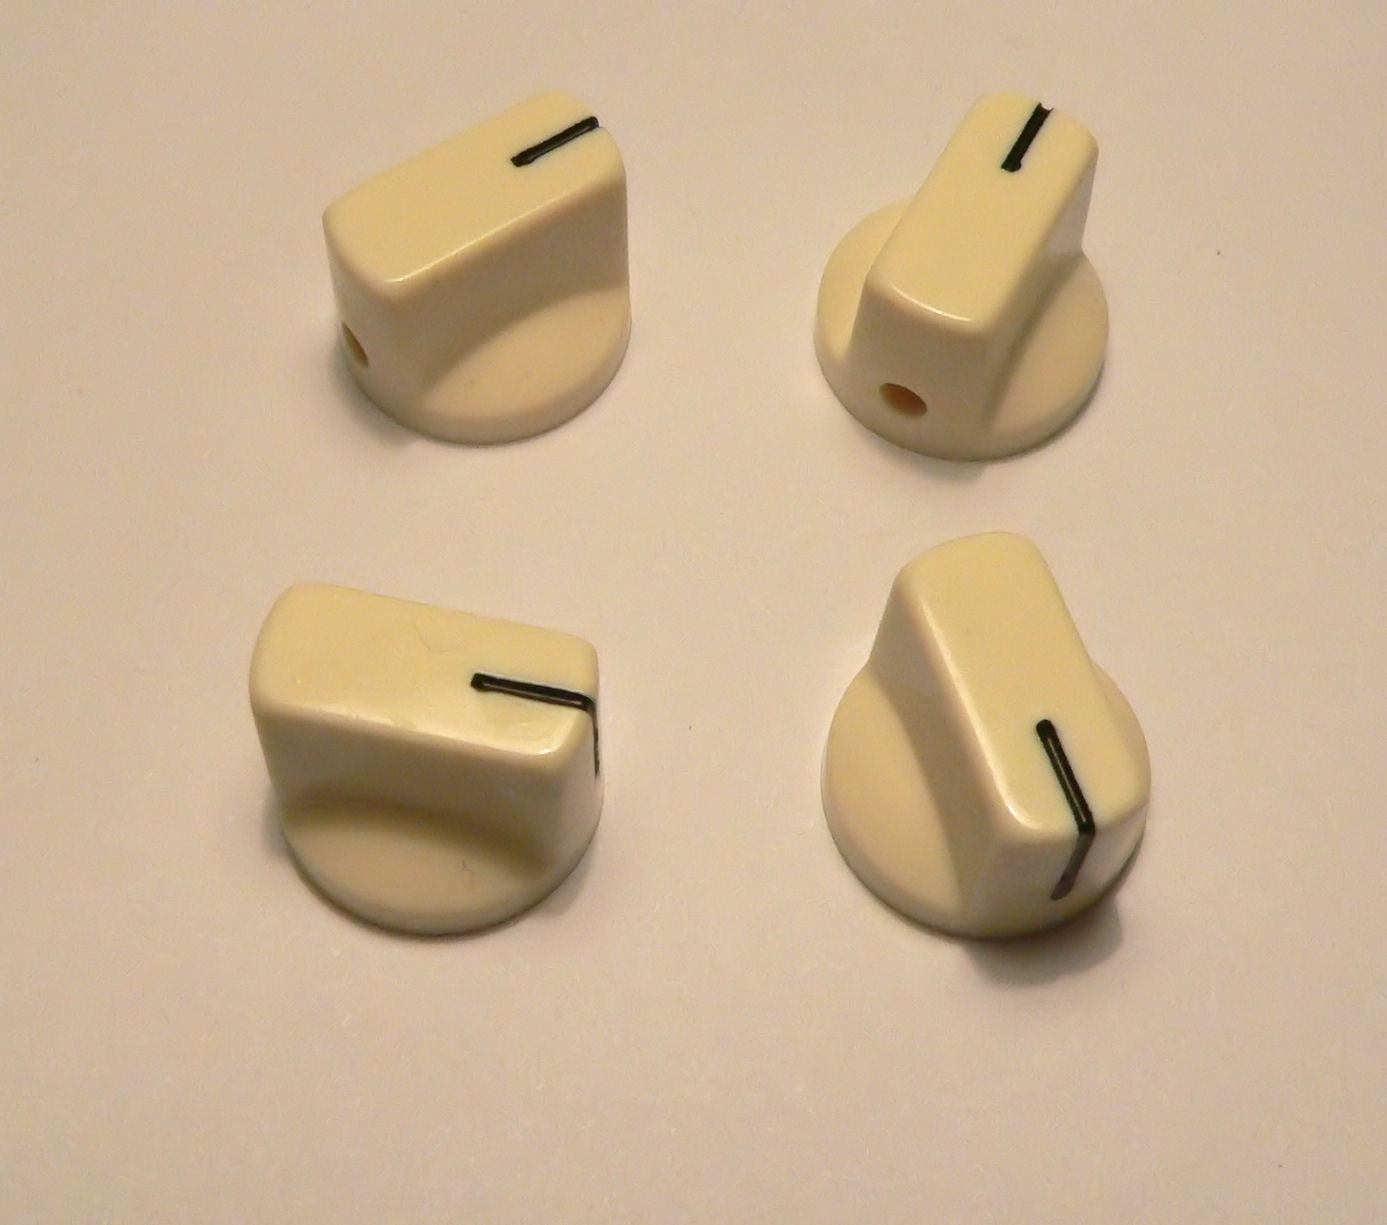 small cream knobs set of 4 for valve radio amplifier or guitar pedal knob ebay. Black Bedroom Furniture Sets. Home Design Ideas